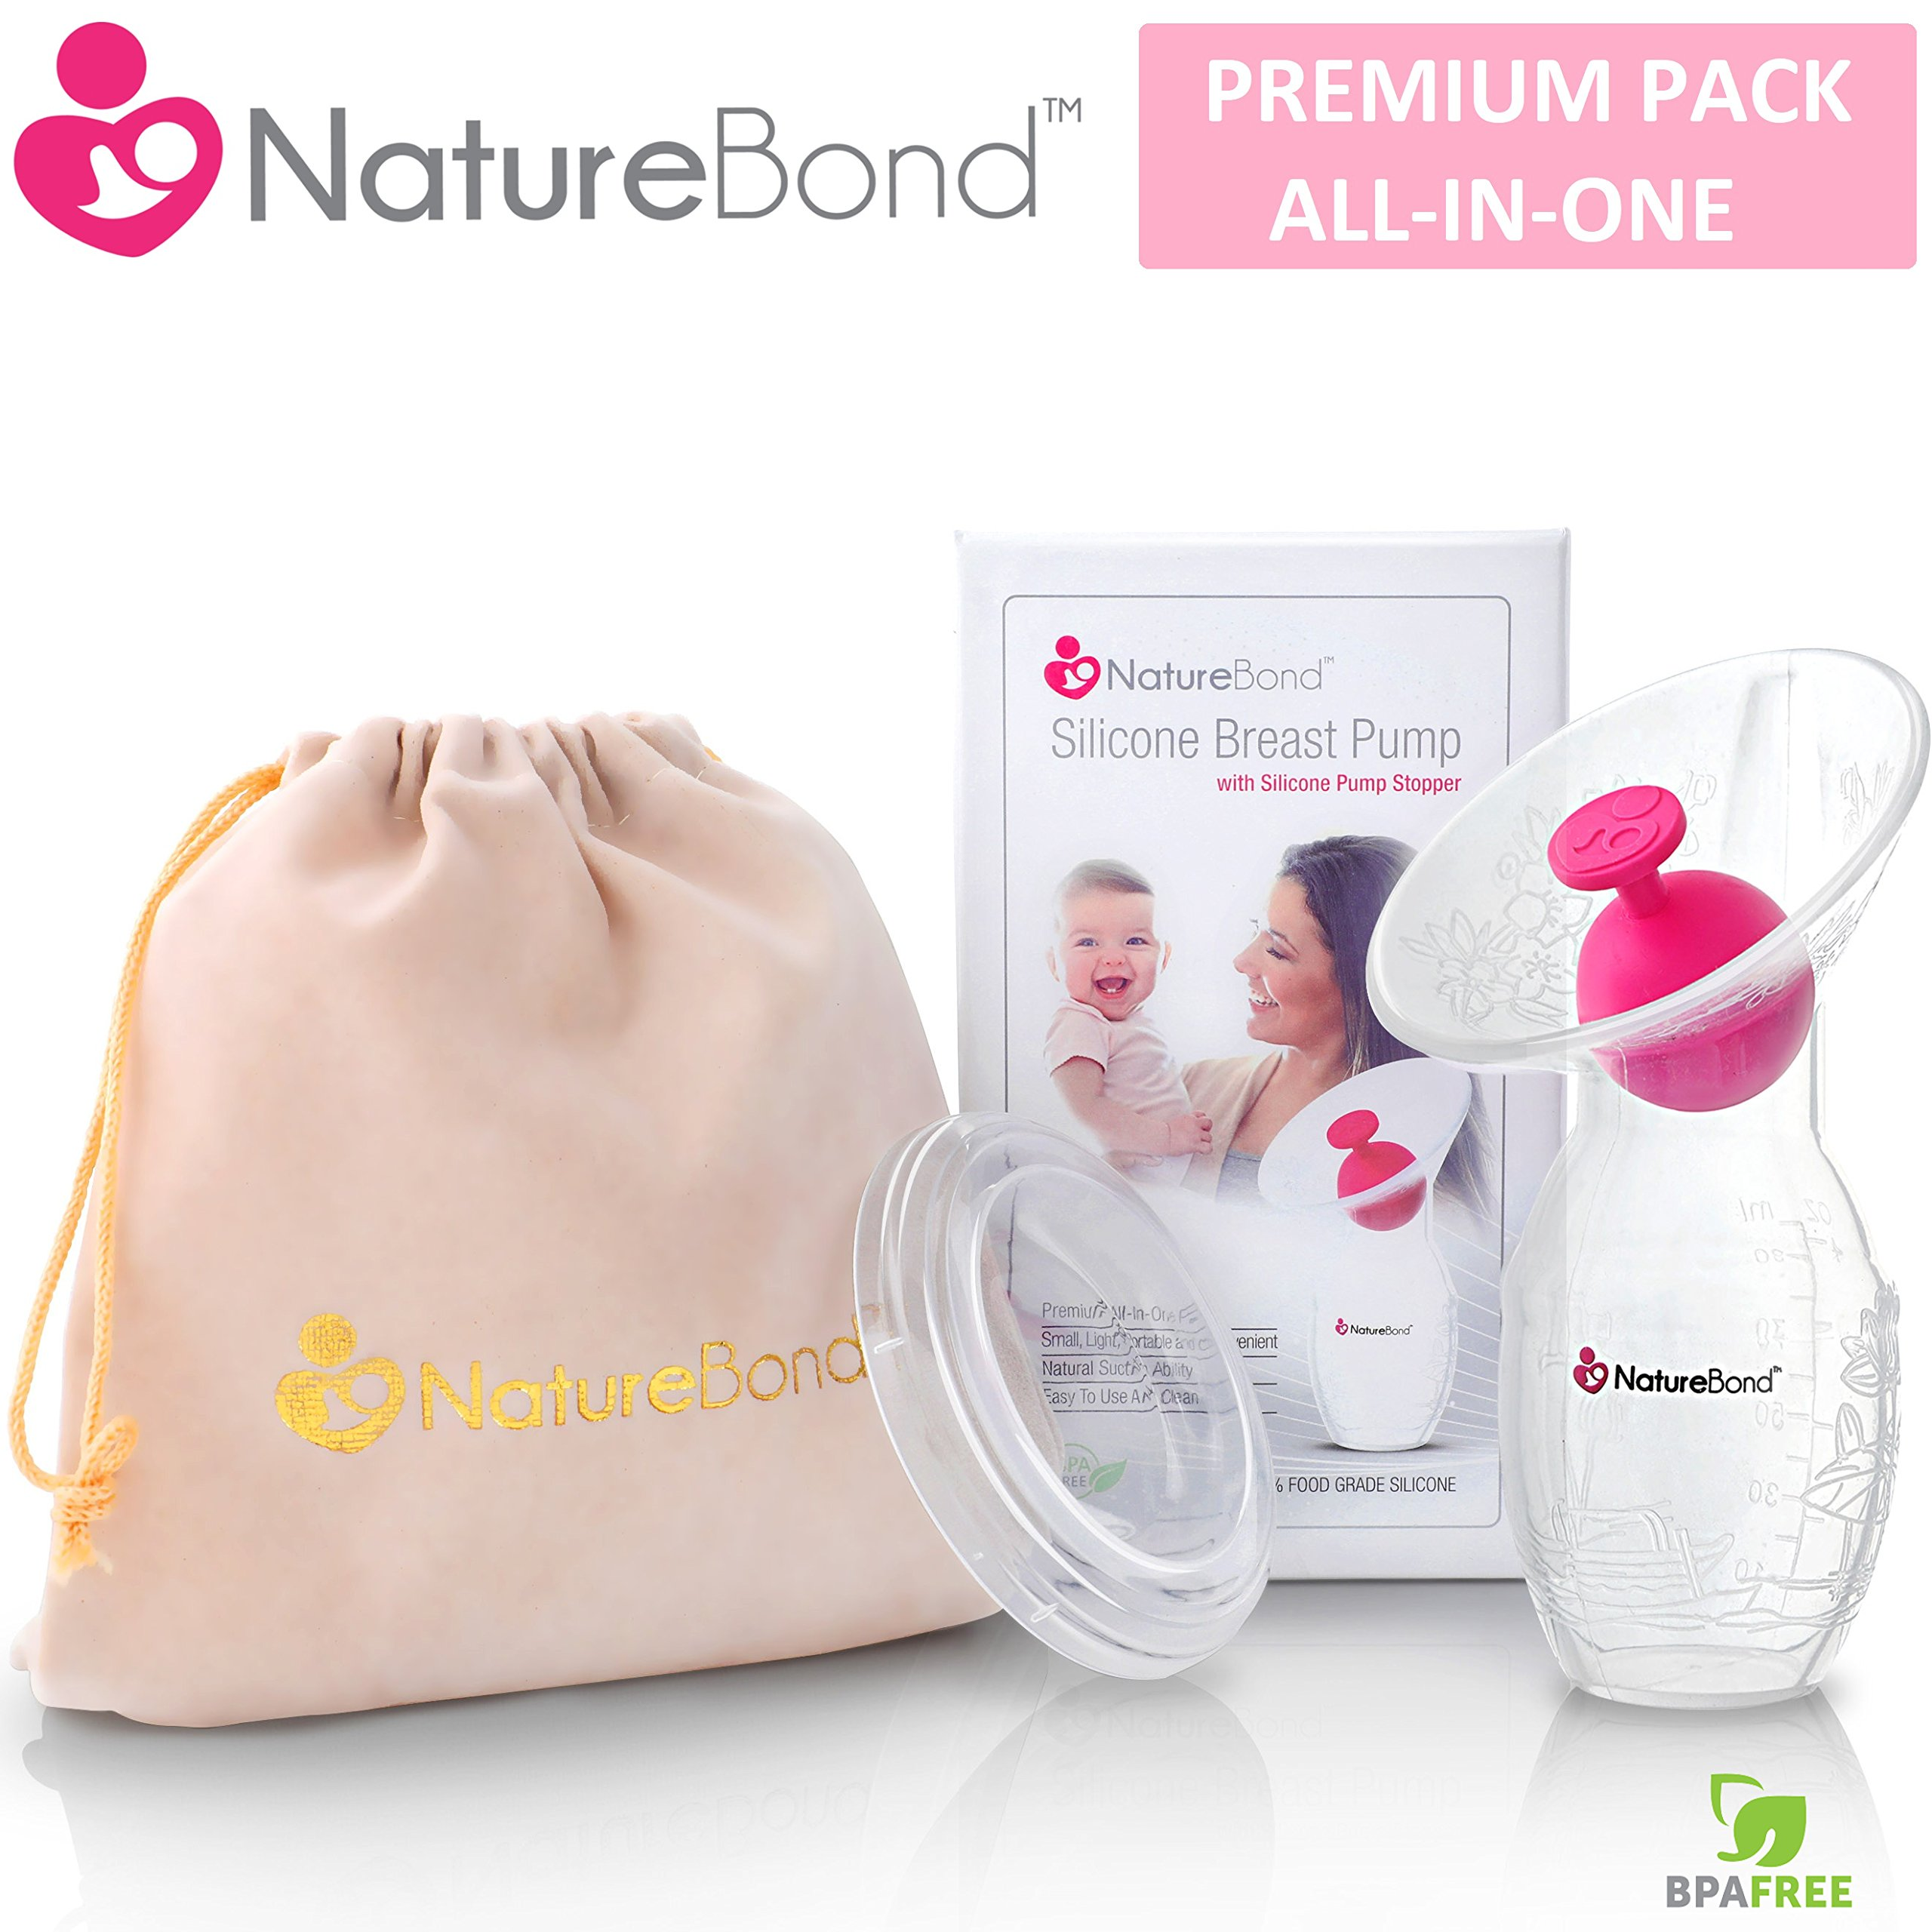 NatureBond Silicone Manual Breast Pump Breastfeeding Milk Saver Suction | BONUS Pump Stopper, Lid, Pouch, AirTight Vacuum Sealed in Hardcover Gift Box. BPA Free & 100% Food Grade Silicone